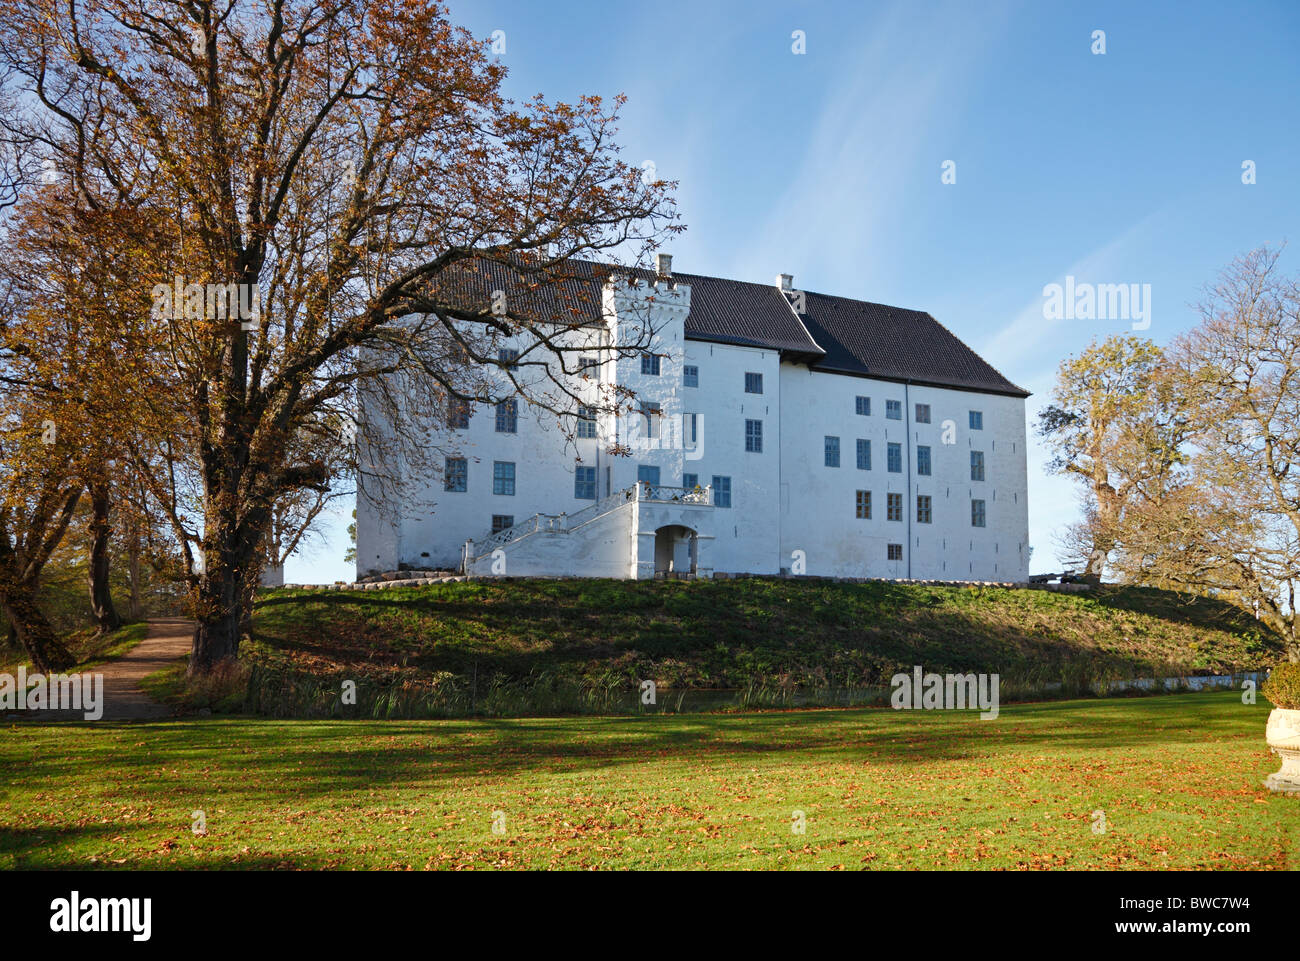 The apparently haunted 12th century medieval Dragsholm Castle in Hørve in north-western part of Zealand, Denmark. Stock Photo